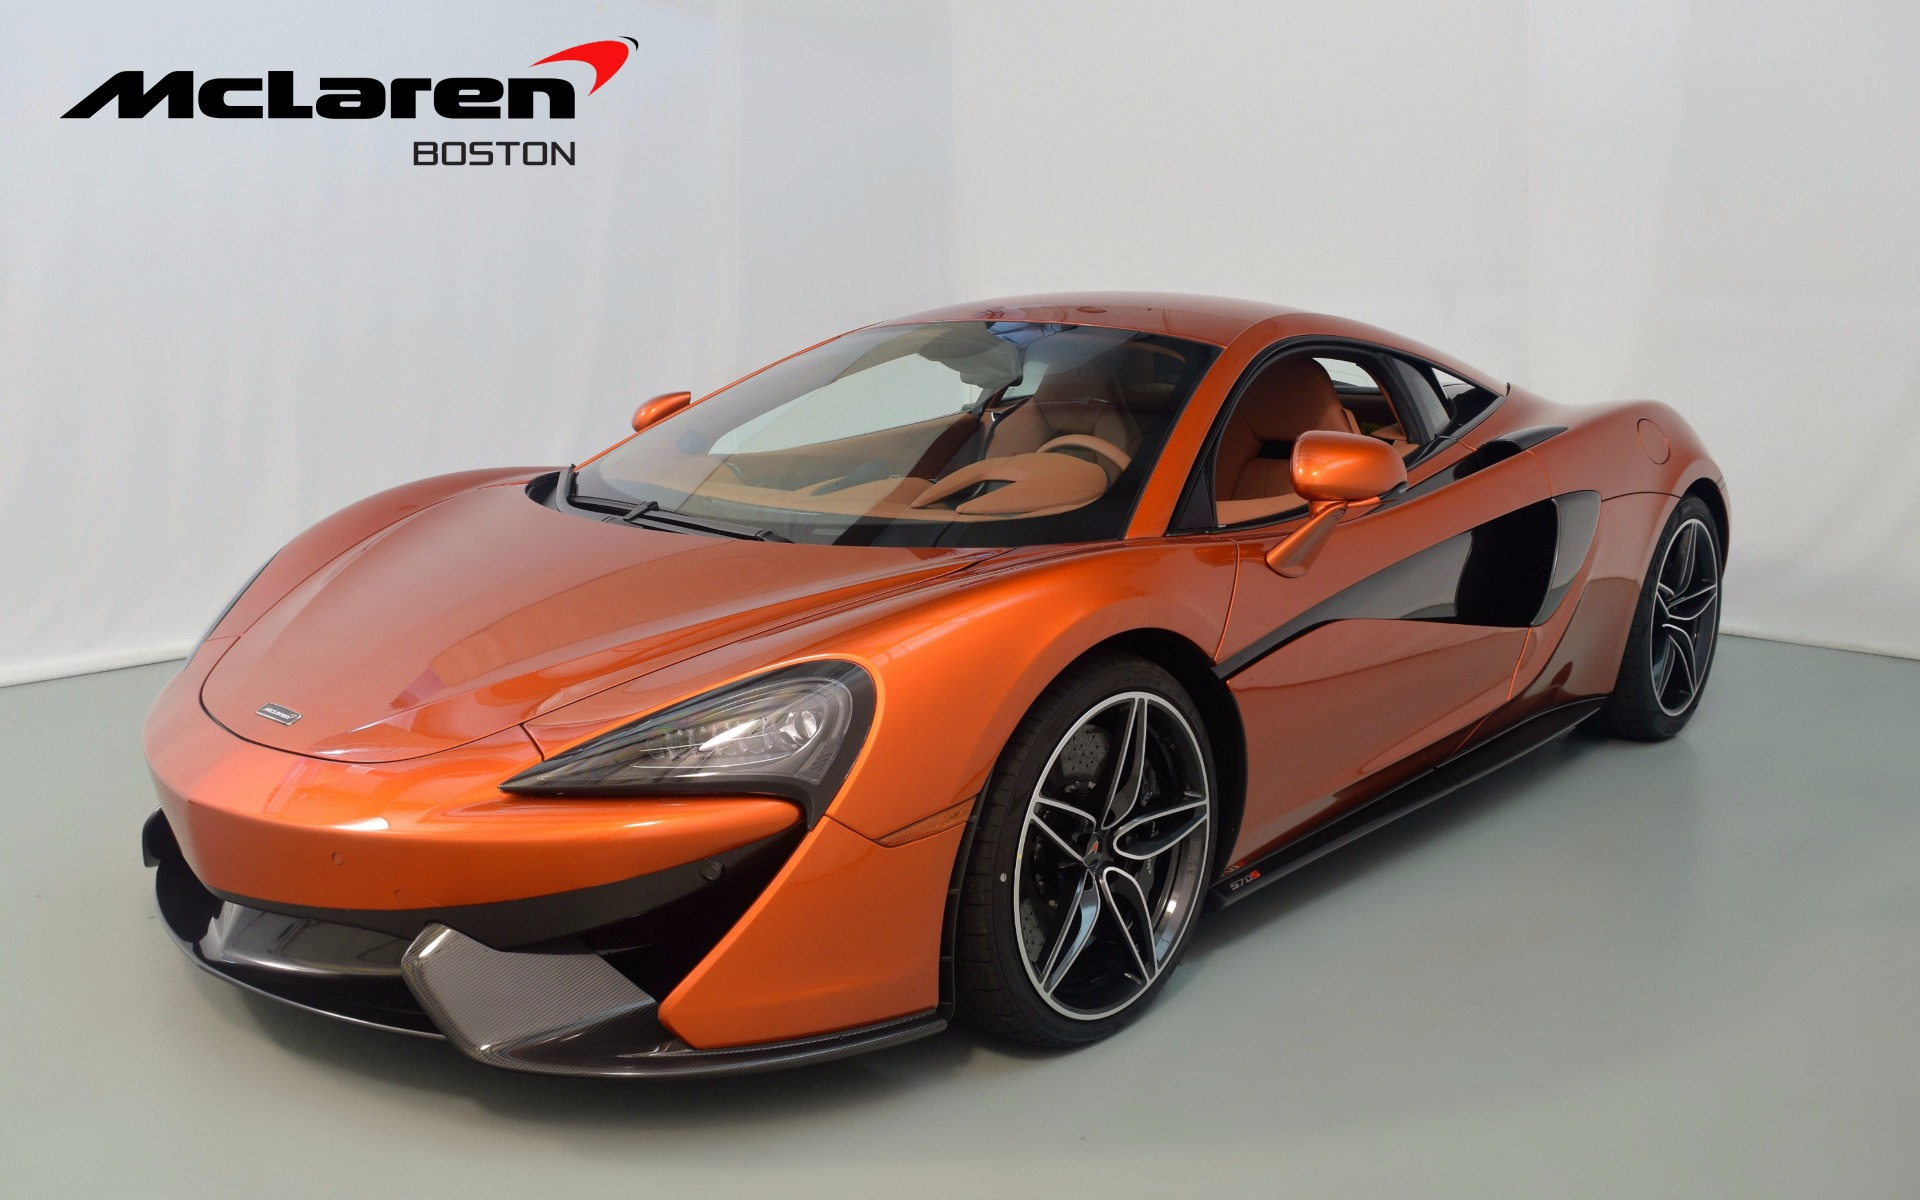 2016 McLaren 570S For Sale in Norwell, MA 000654A ...